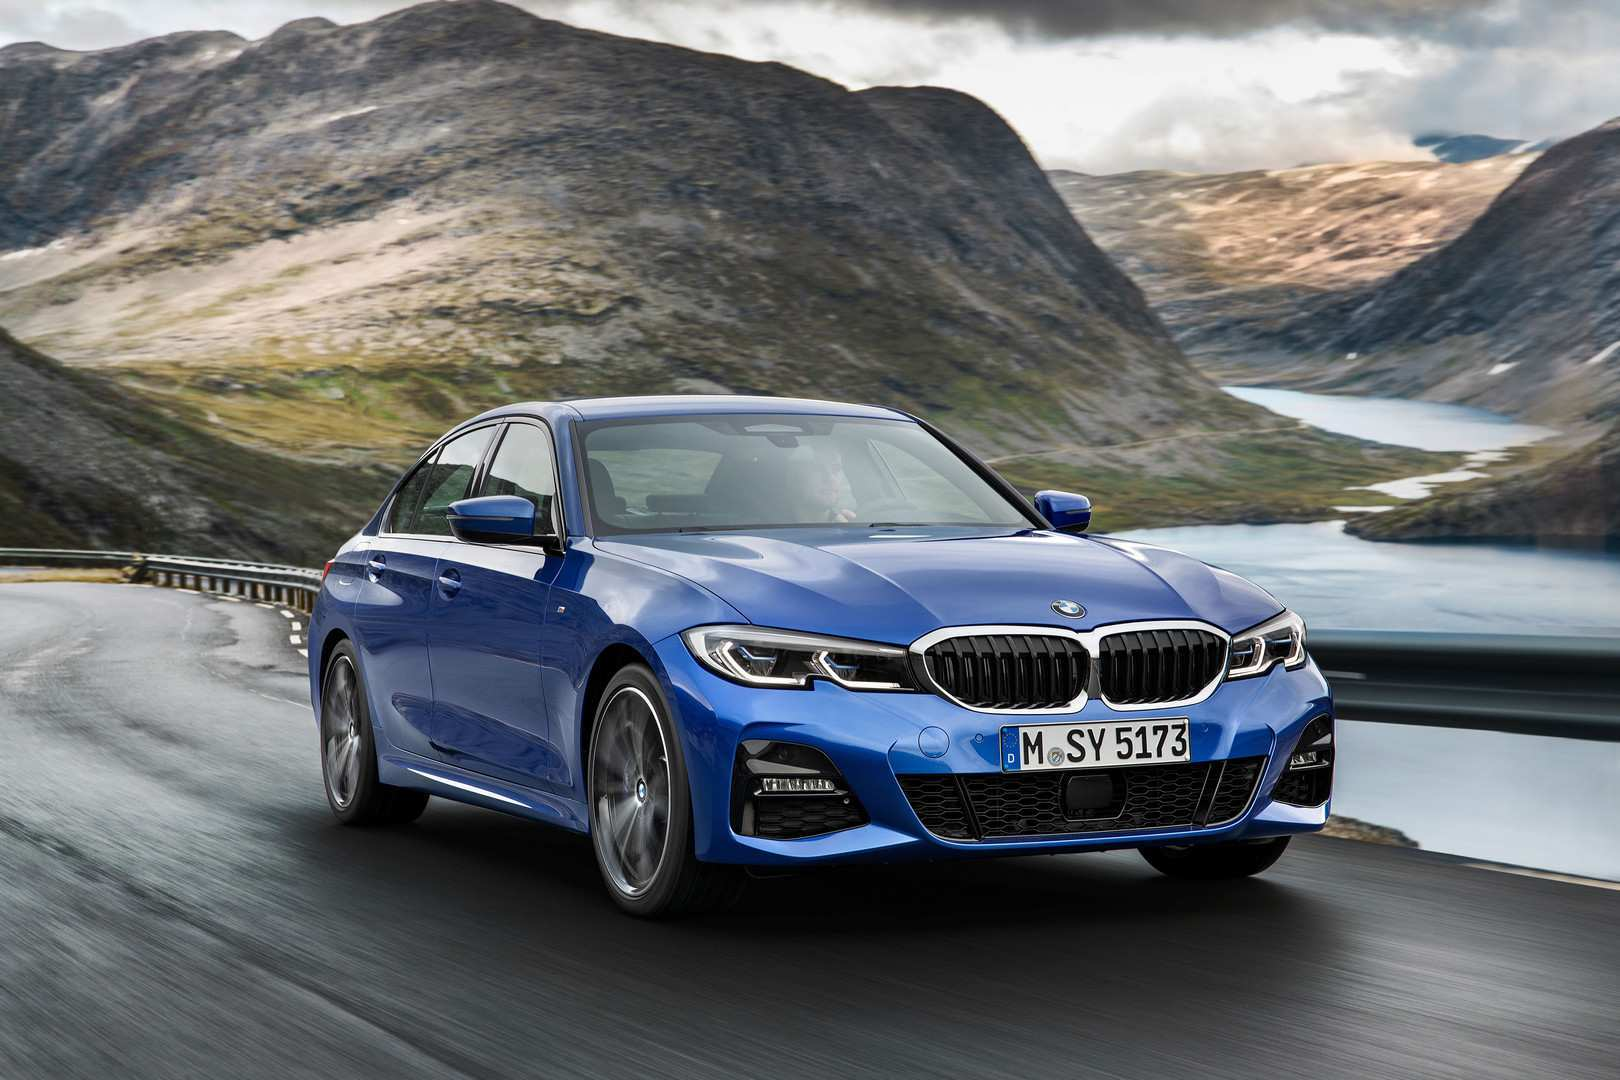 72 All New 2019 Bmw 3 Series G20 Concept